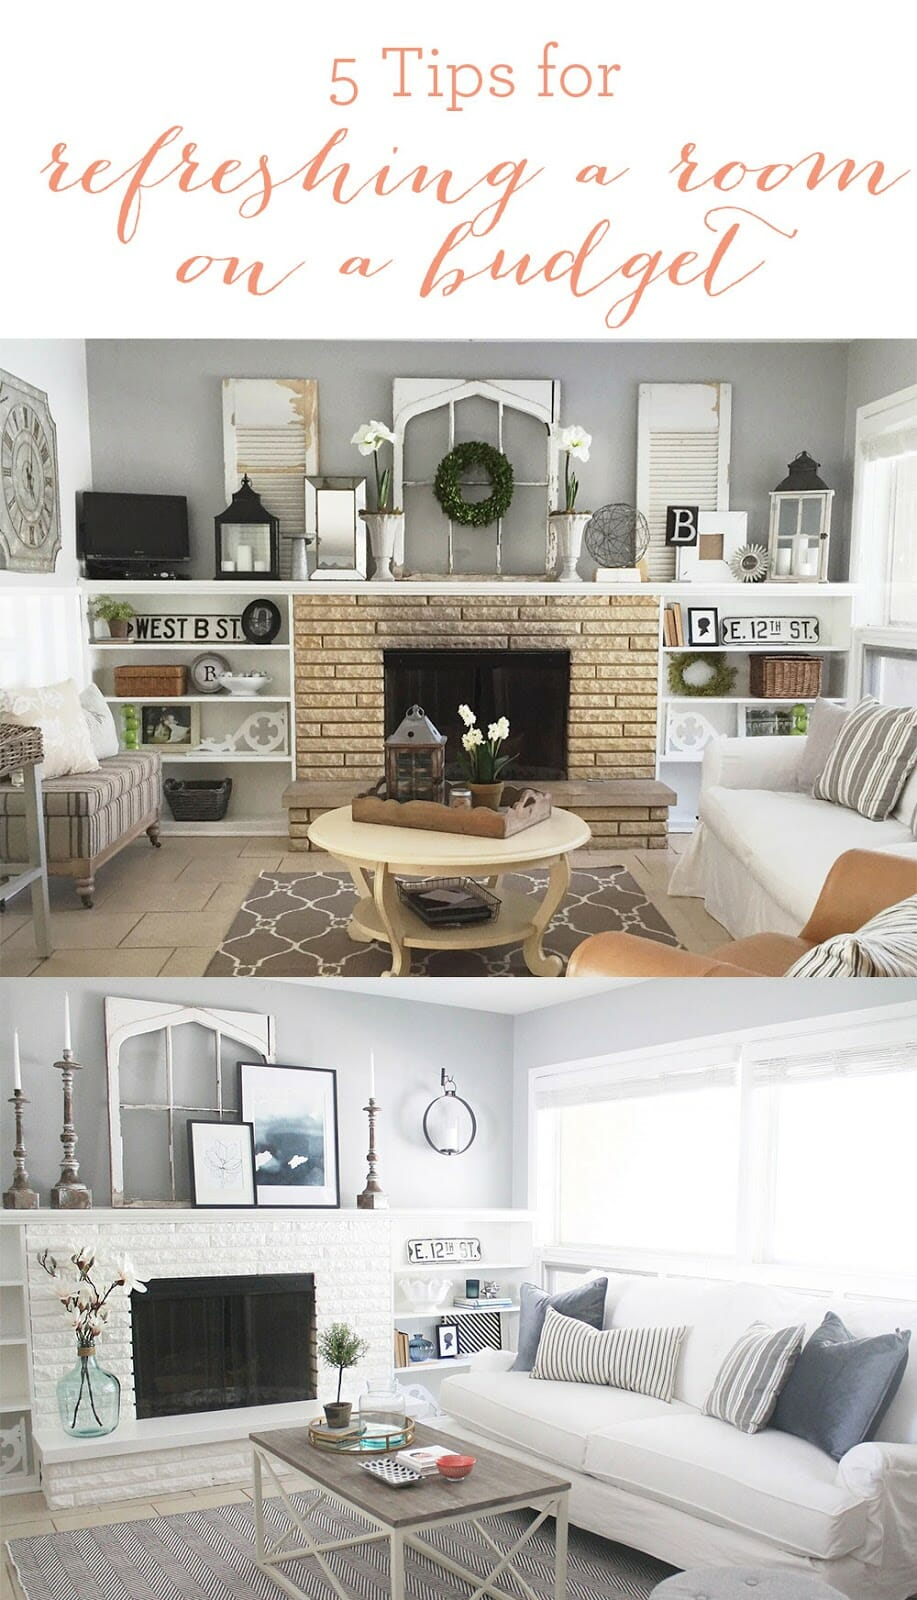 5 Tips for Refreshing a Room on a Budget (Hearth Room Reveal)